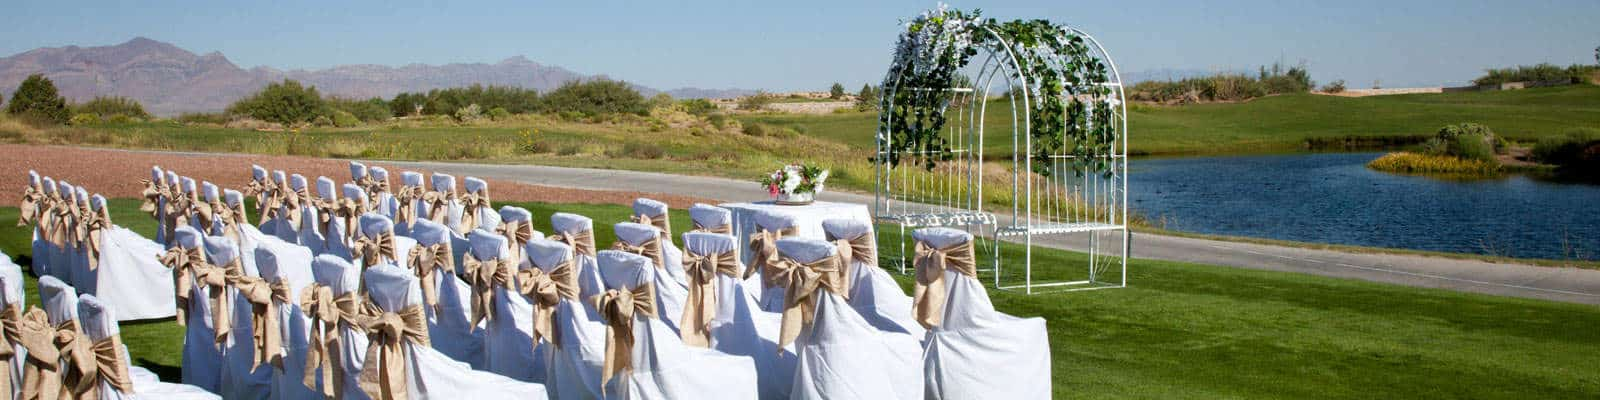 Celebrate your special occasions on the golf course